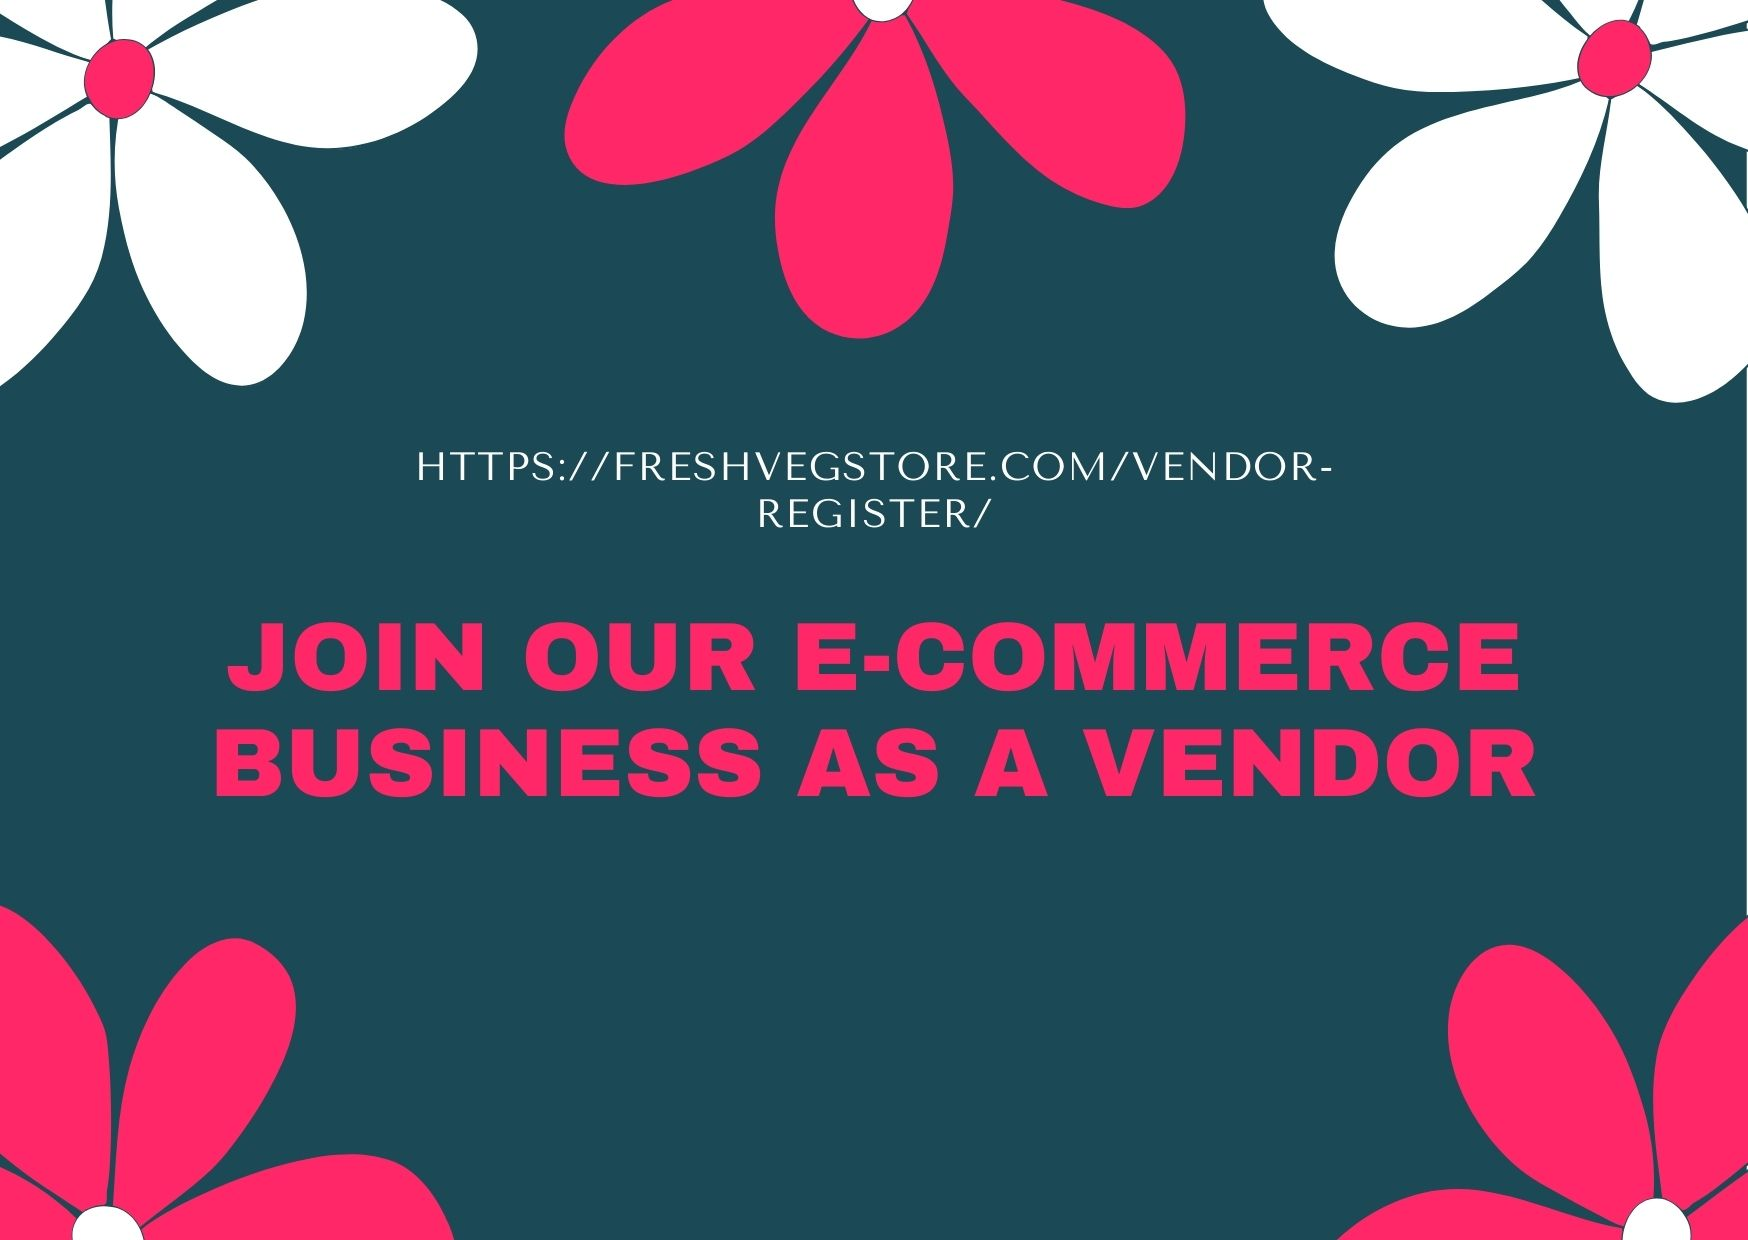 JOIN OUR E-COMMERCE BUSINESS AS A VENDOR